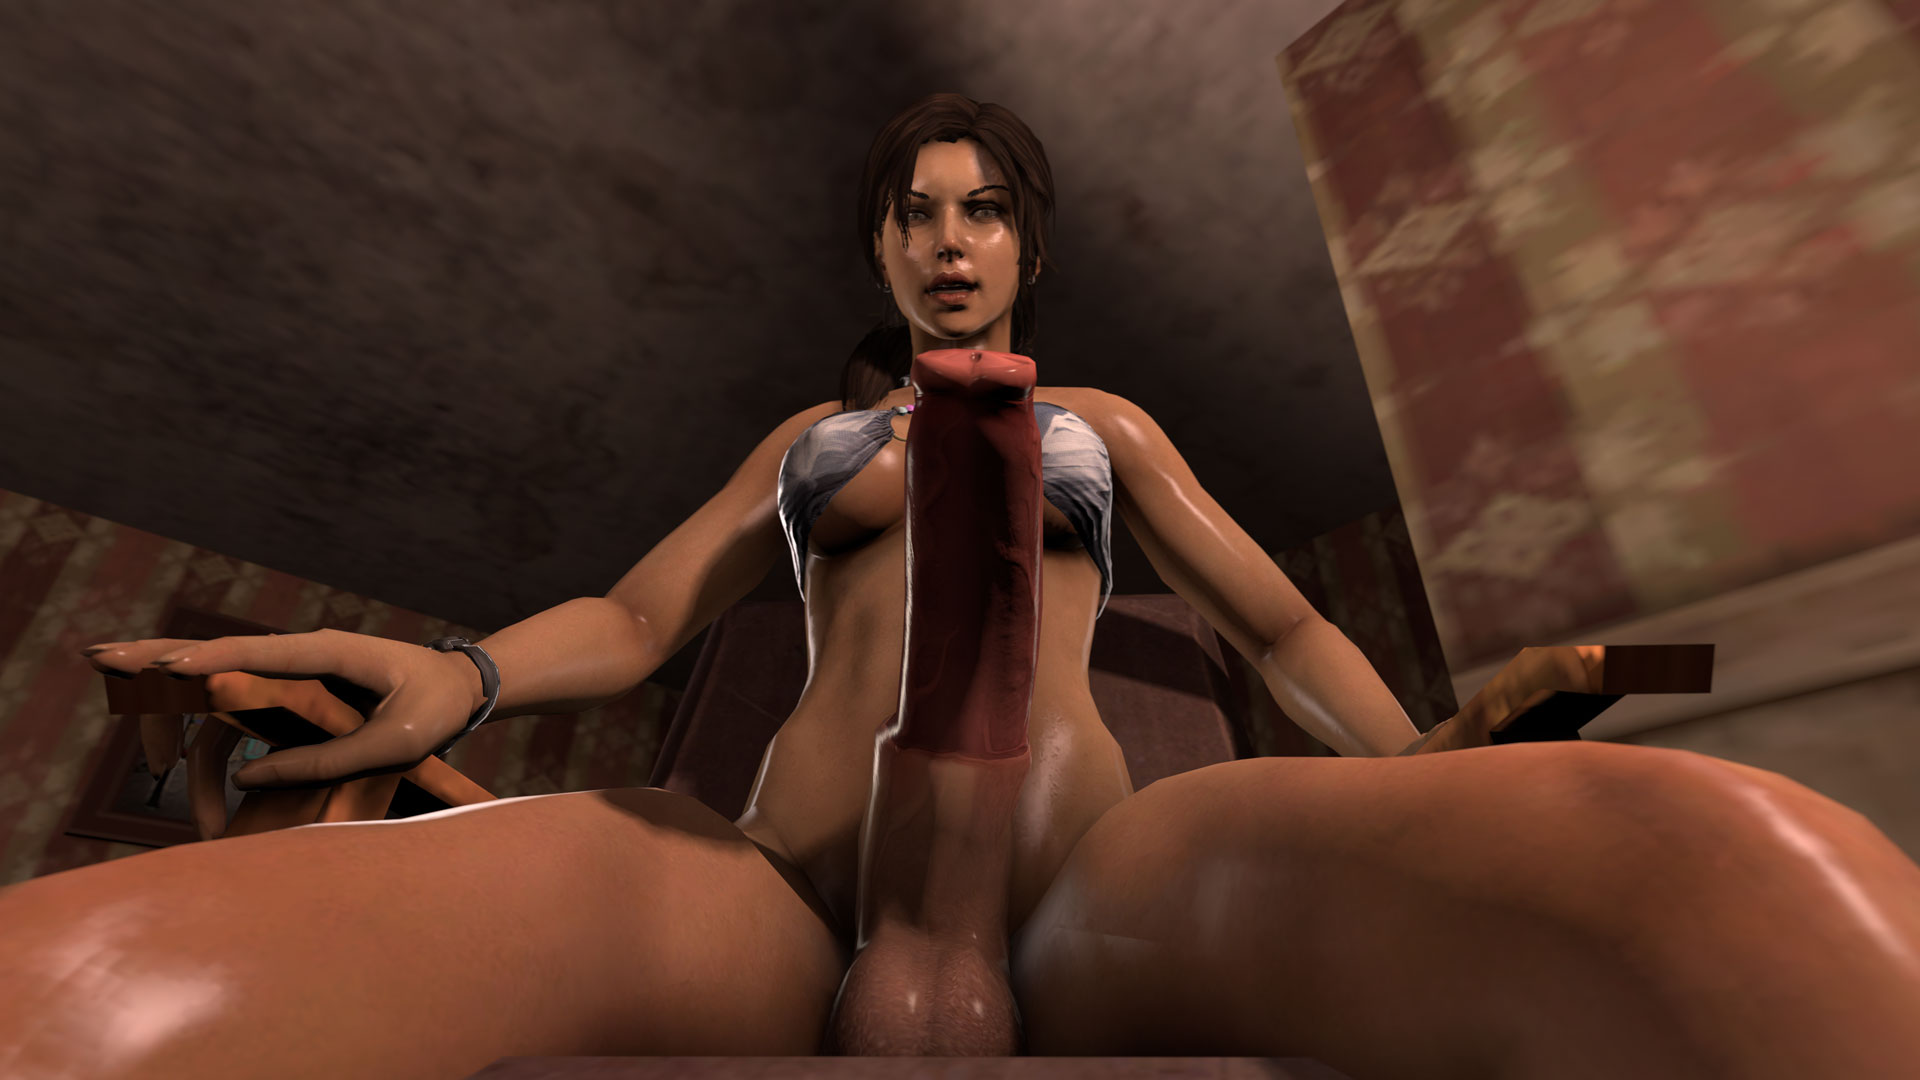 Laracroft futanari exposed pictures